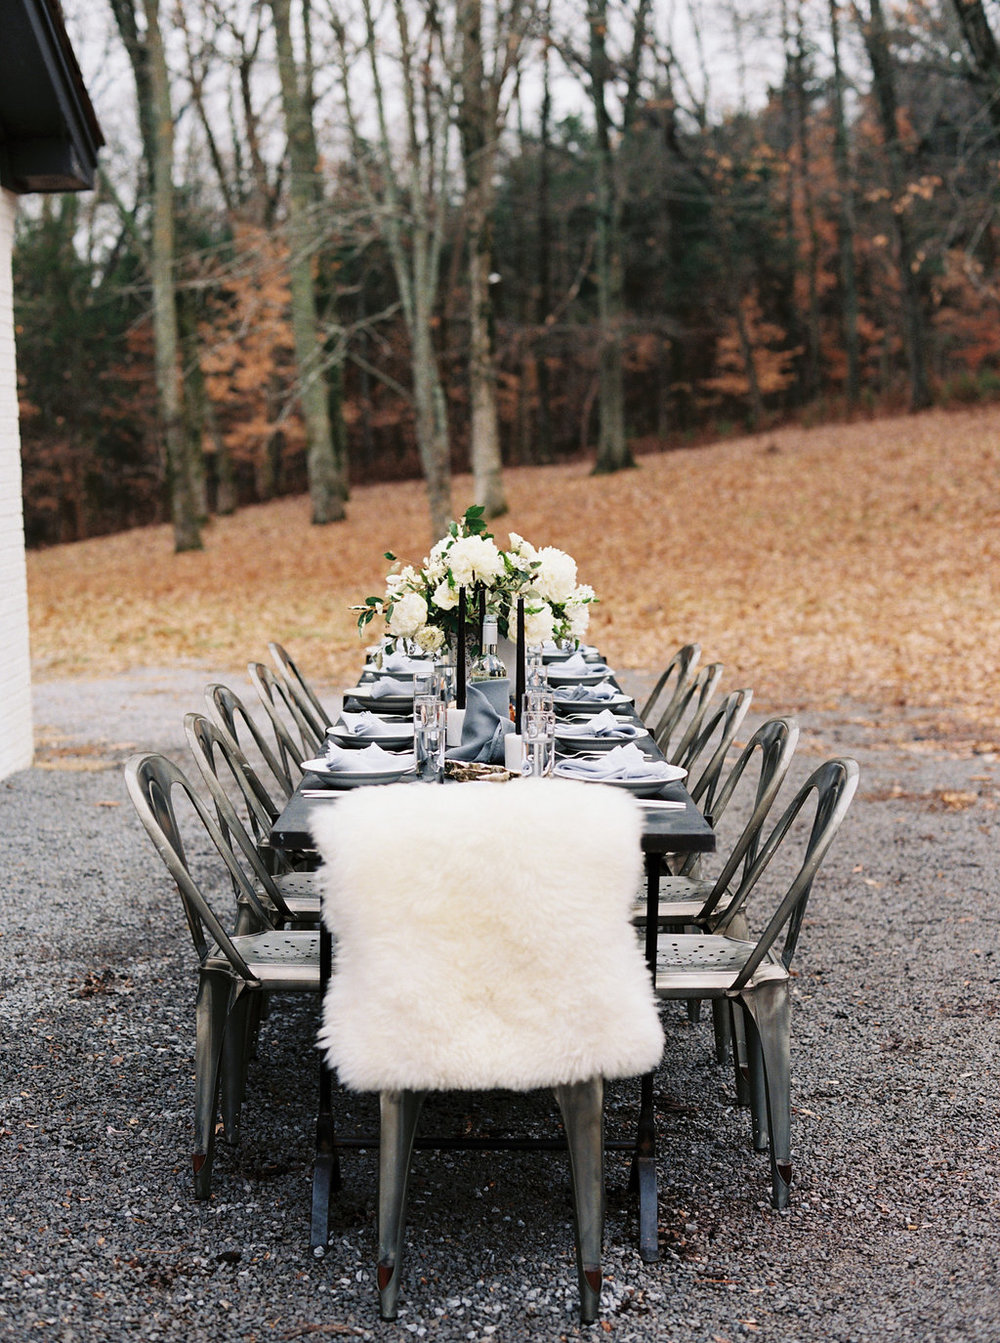 12th-Table-WEDDING-RENTALS-NASHVILLE-Design-Tips-Hosting-ENTERTAINING-Series-HowIHost-Photograph #